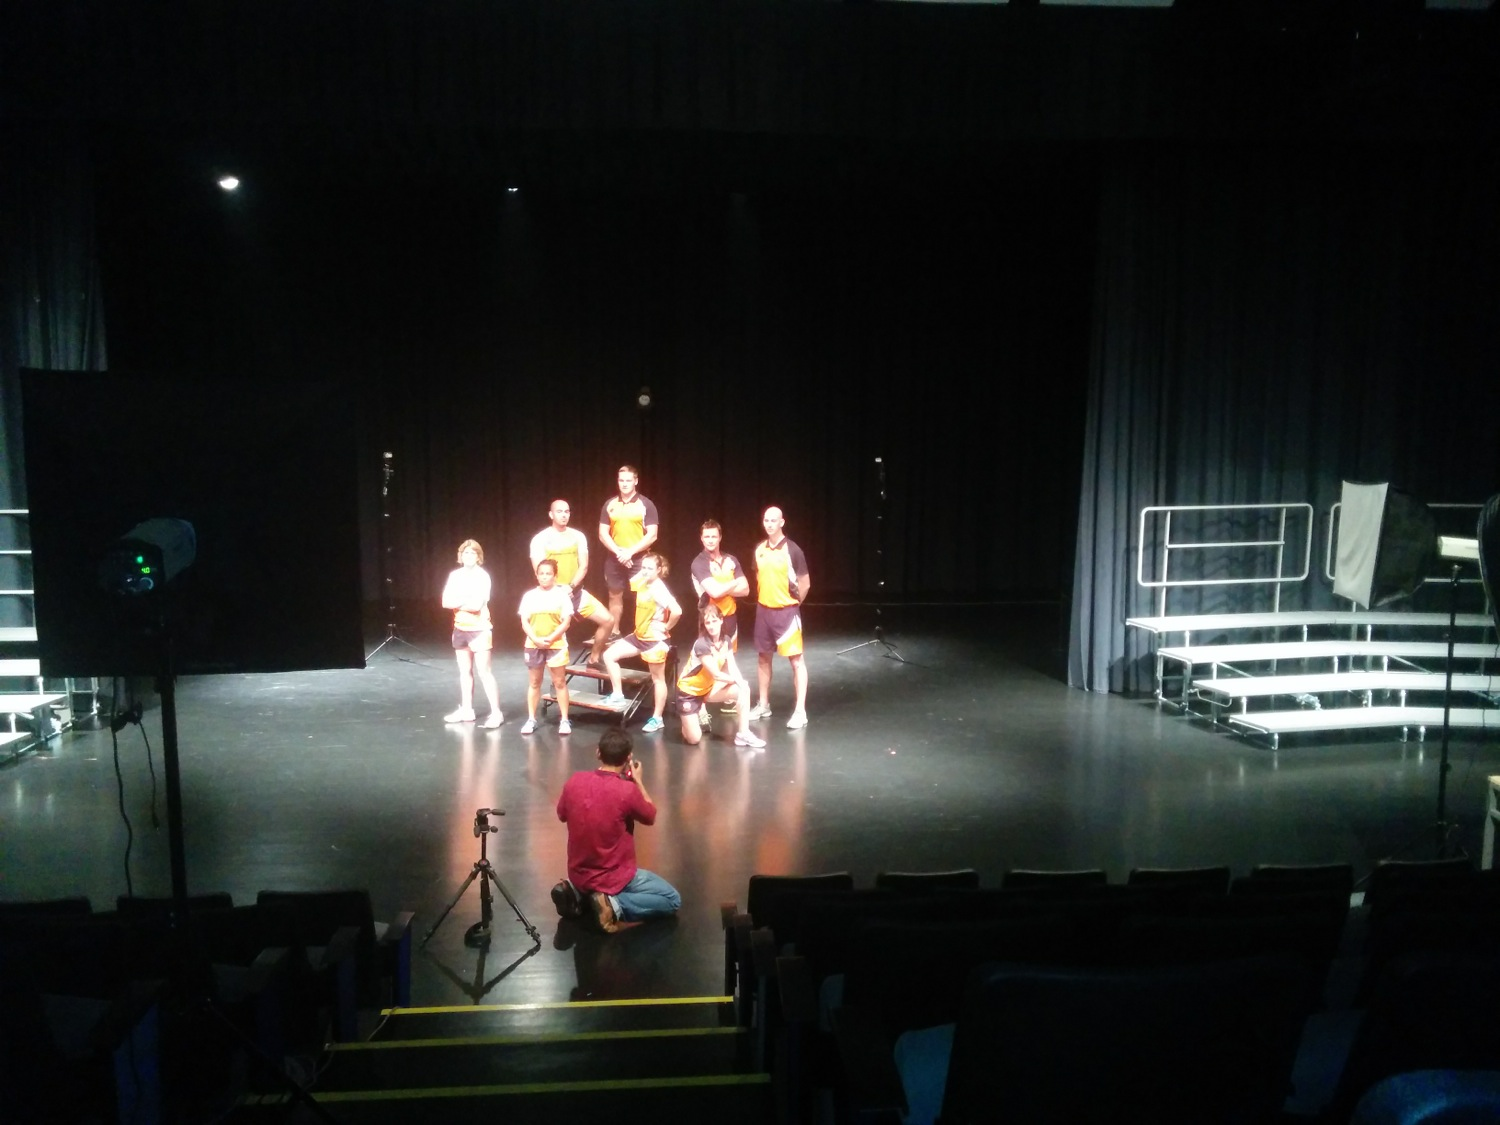 BTS: Special group pictures and lighting setup at The British School of Kuala Lumpur